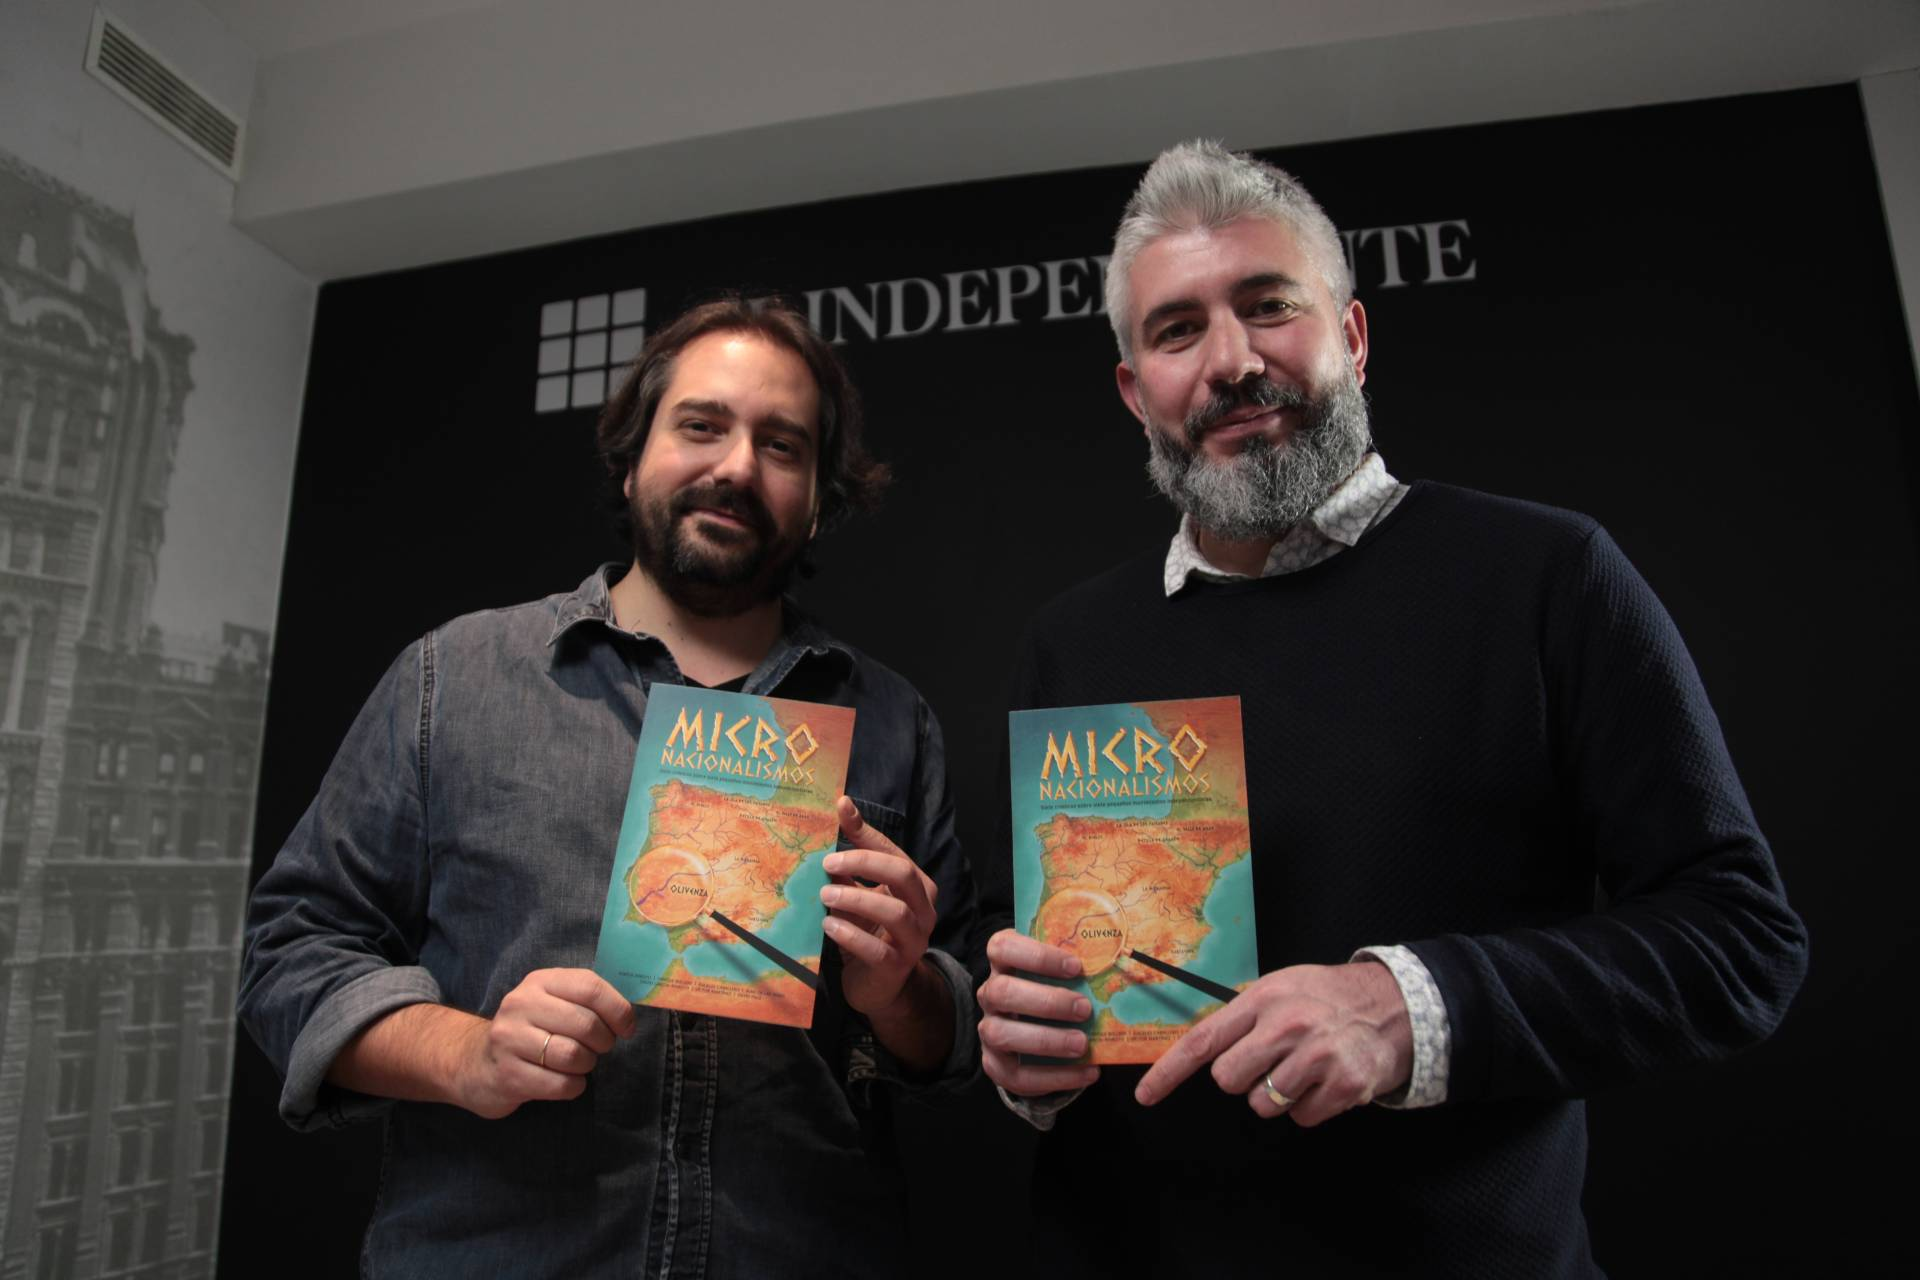 Los periodistas de El Independiente, David García-Maroto y David Page.